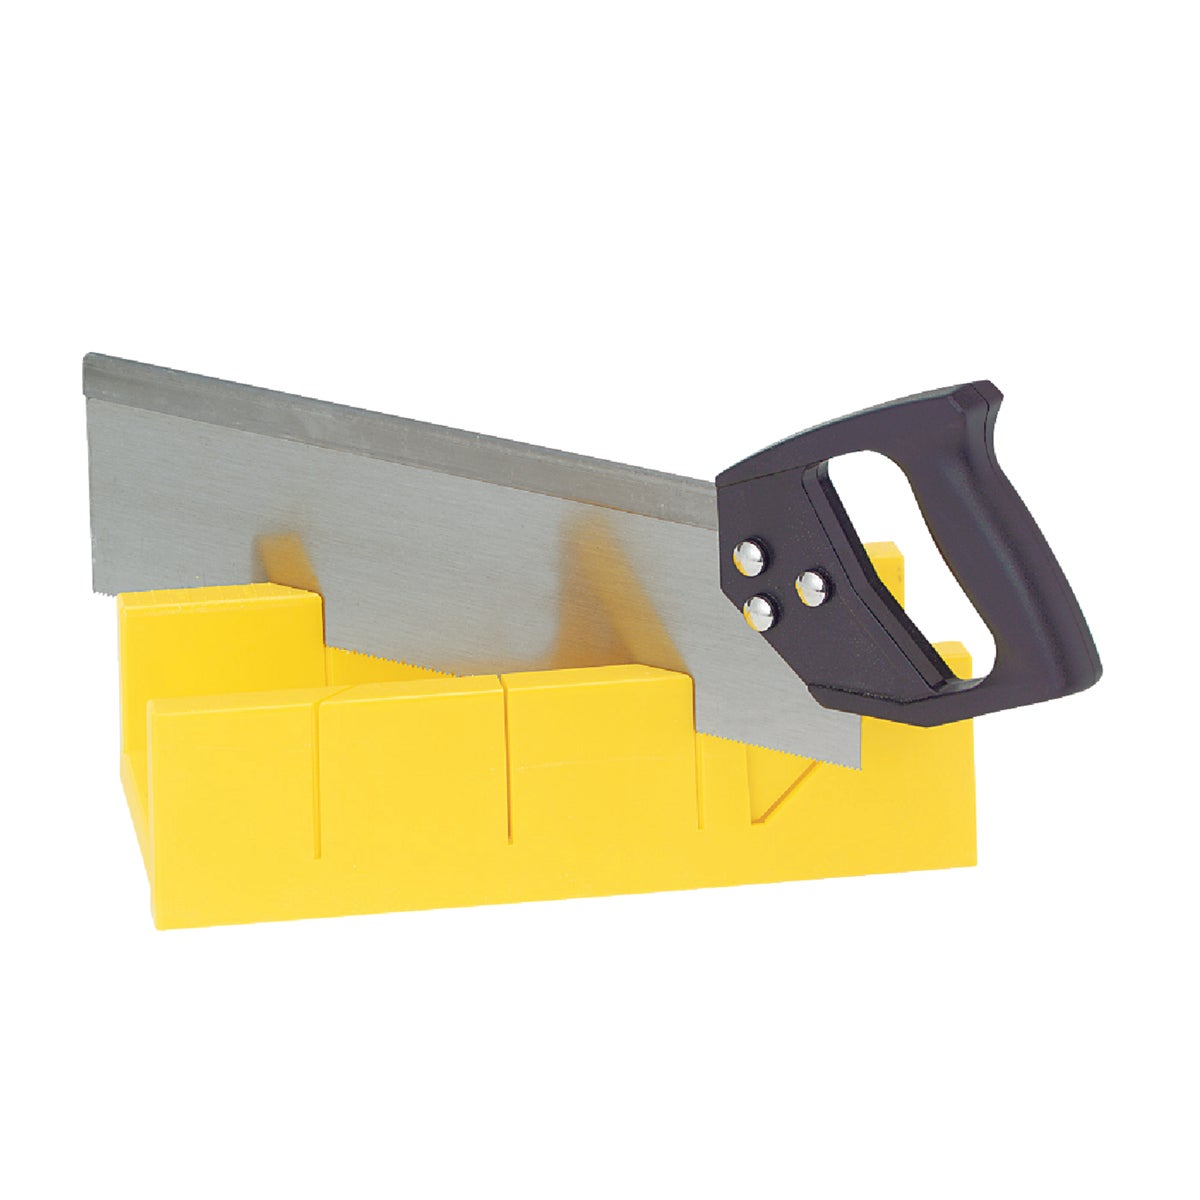 "12"" PLASTIC MITER BOX - 340588 by Great Neck Saw Inc"